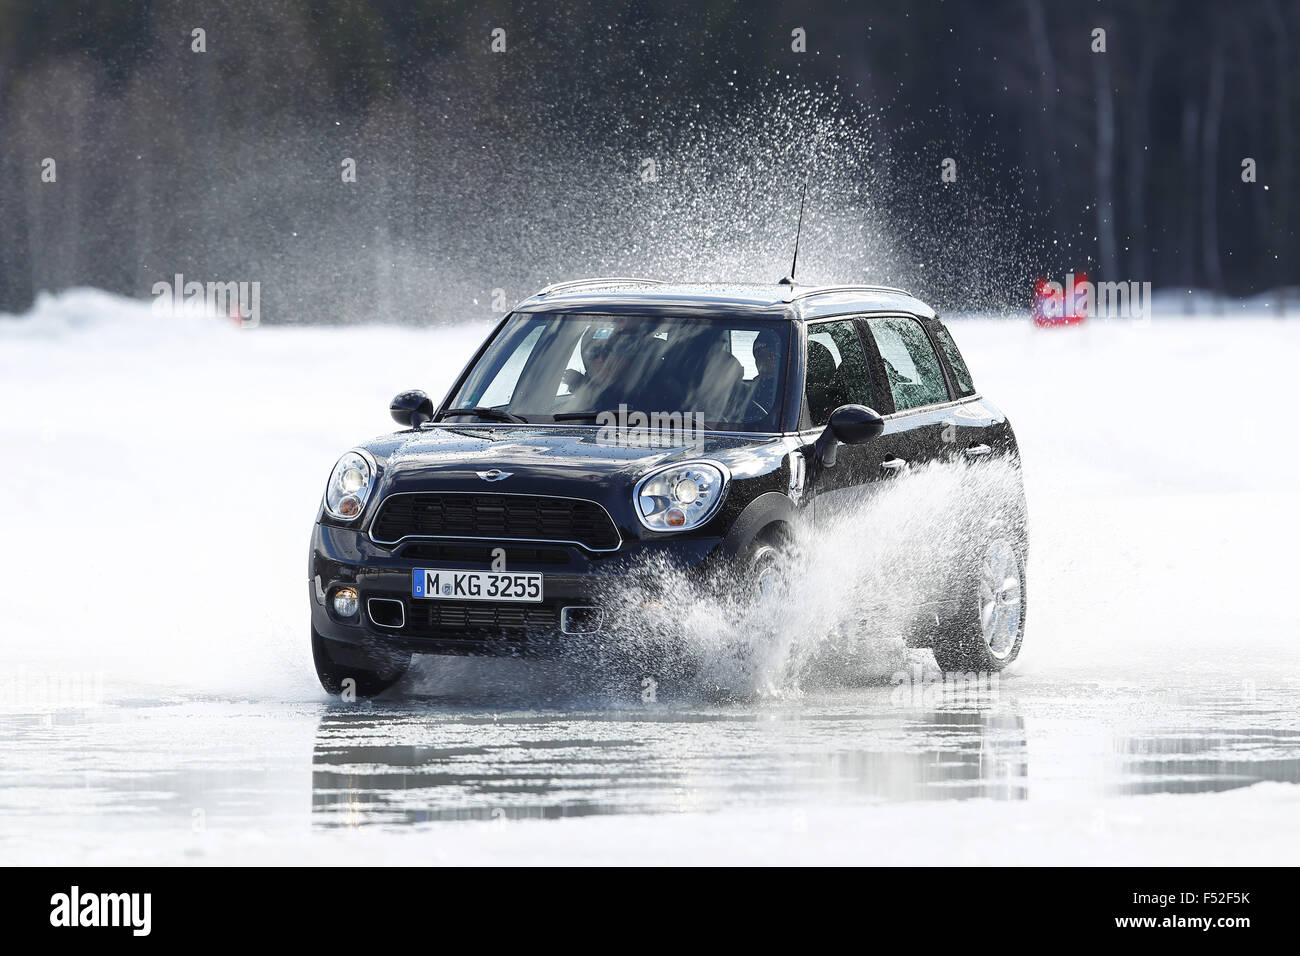 Car mini year of construction in 2012 black moving four wheel drive on ice and snow water splashes